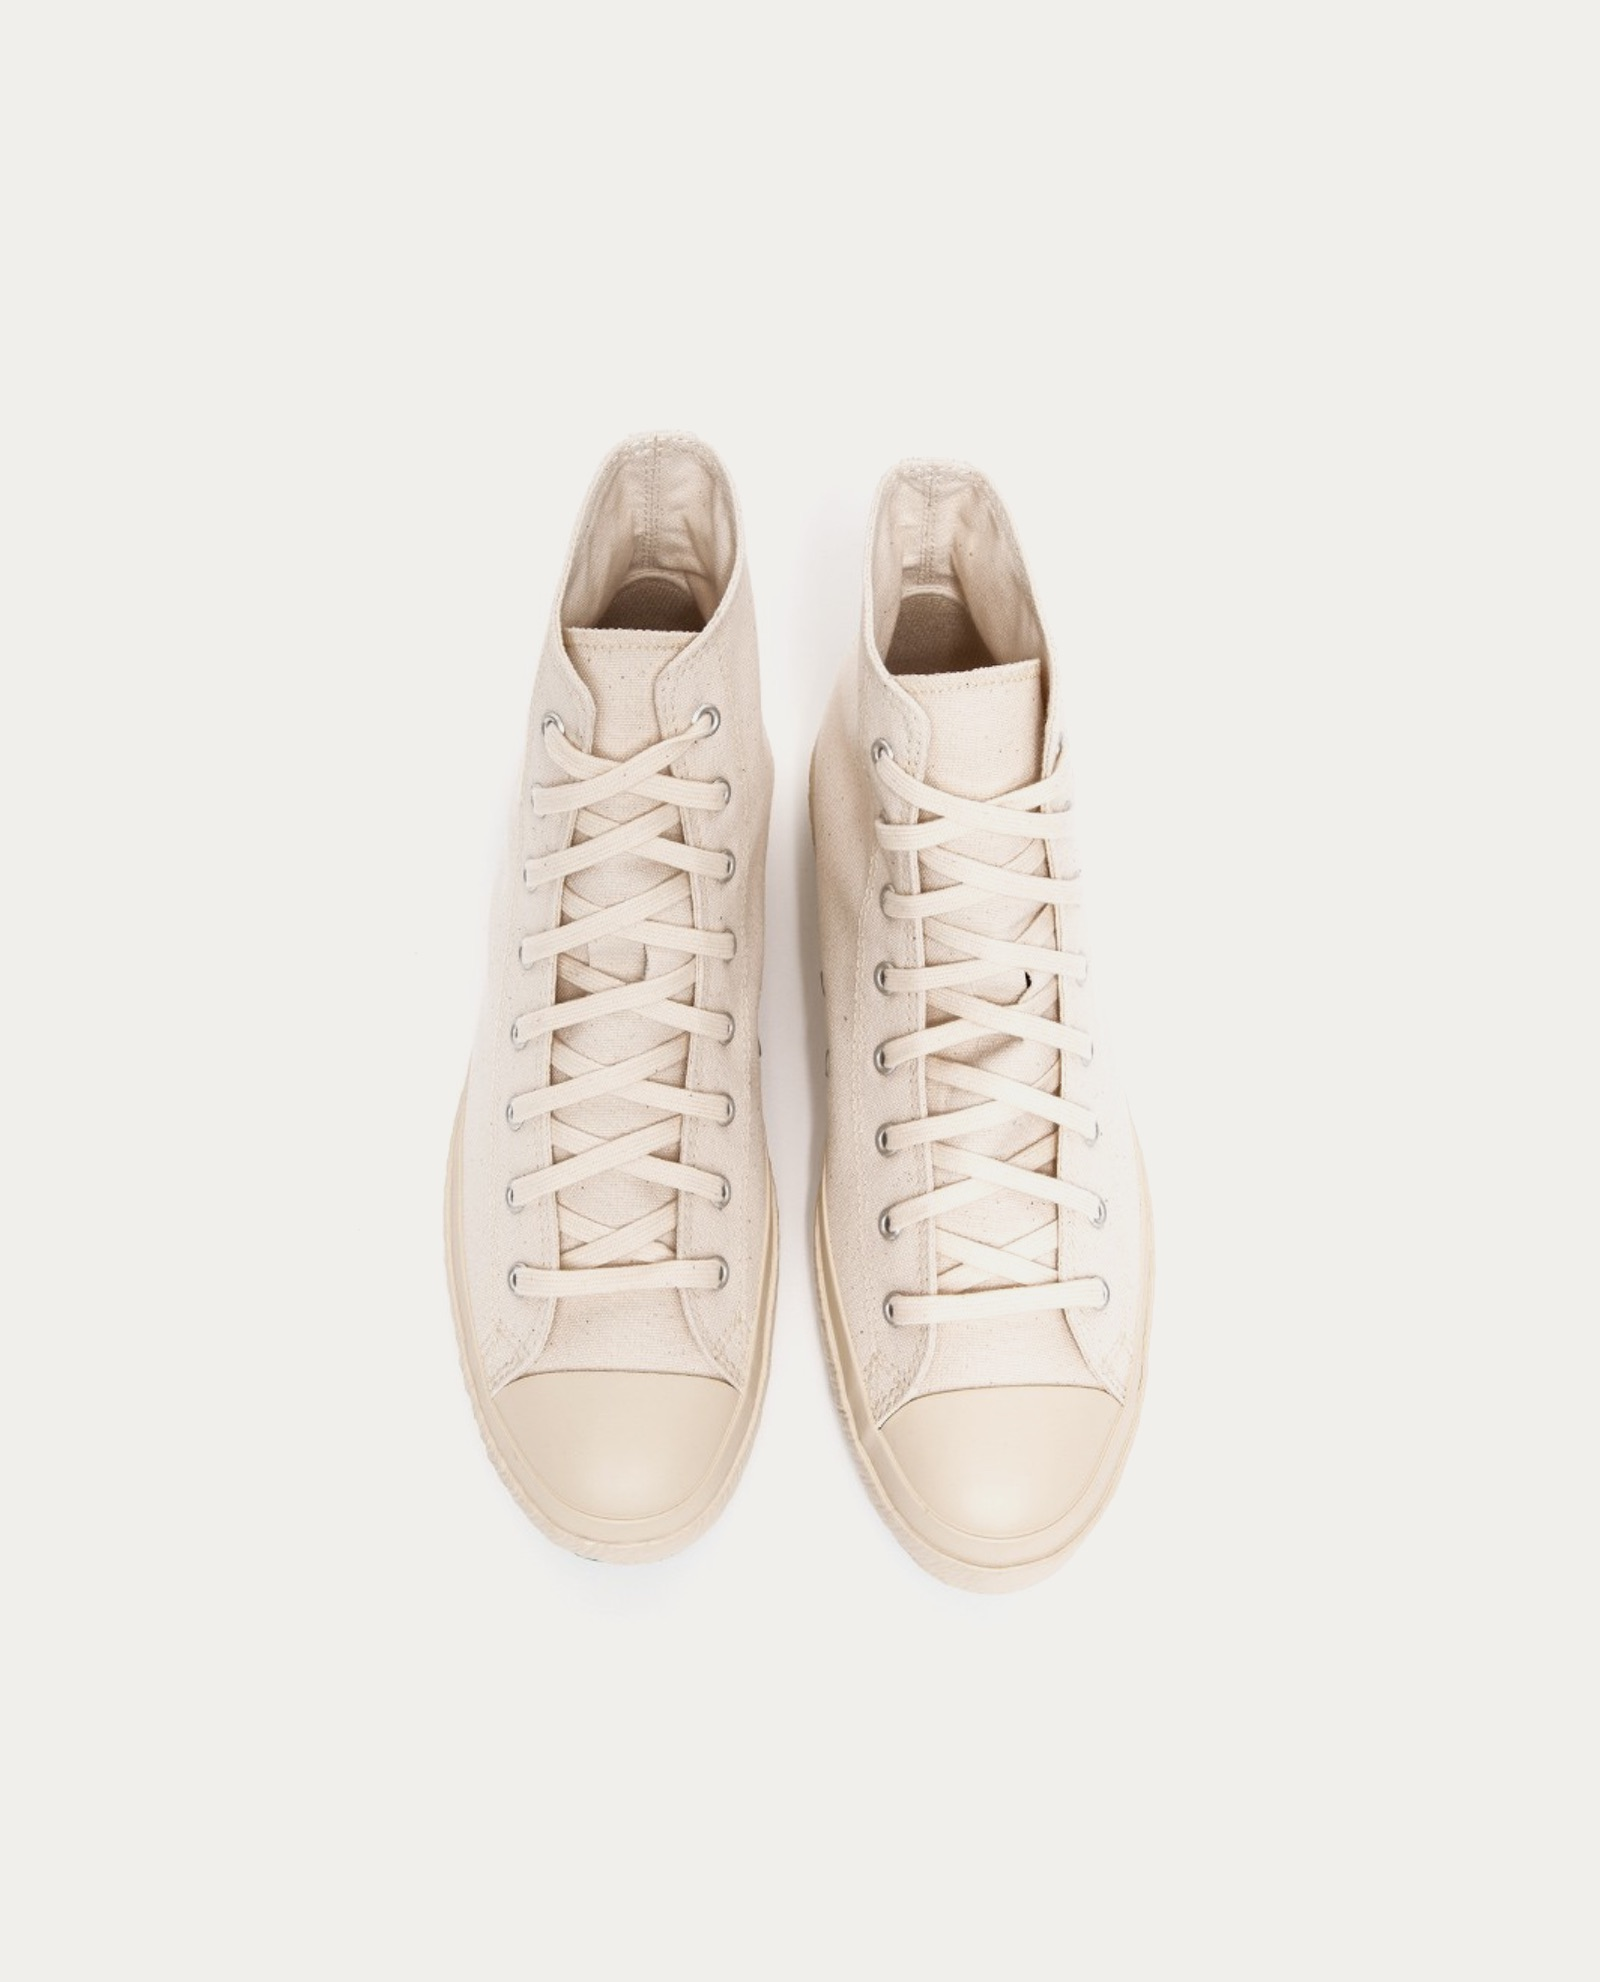 Shoes Like Pottery White High Top